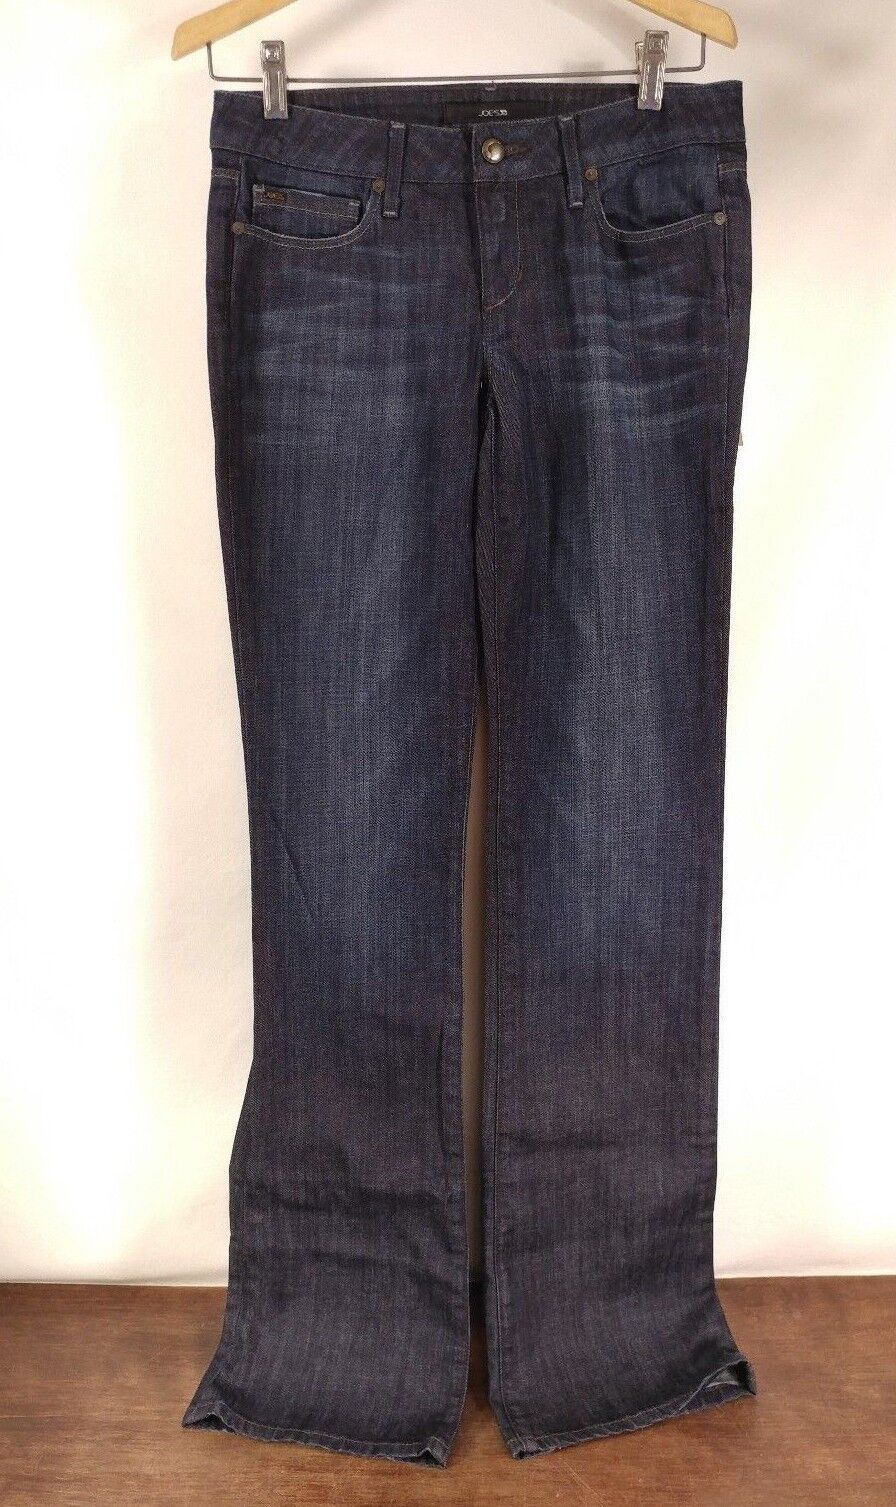 Joe's Jeans Women's Size 27 x 34 Dark Denim Honey Booty Fit bluee New With Tags